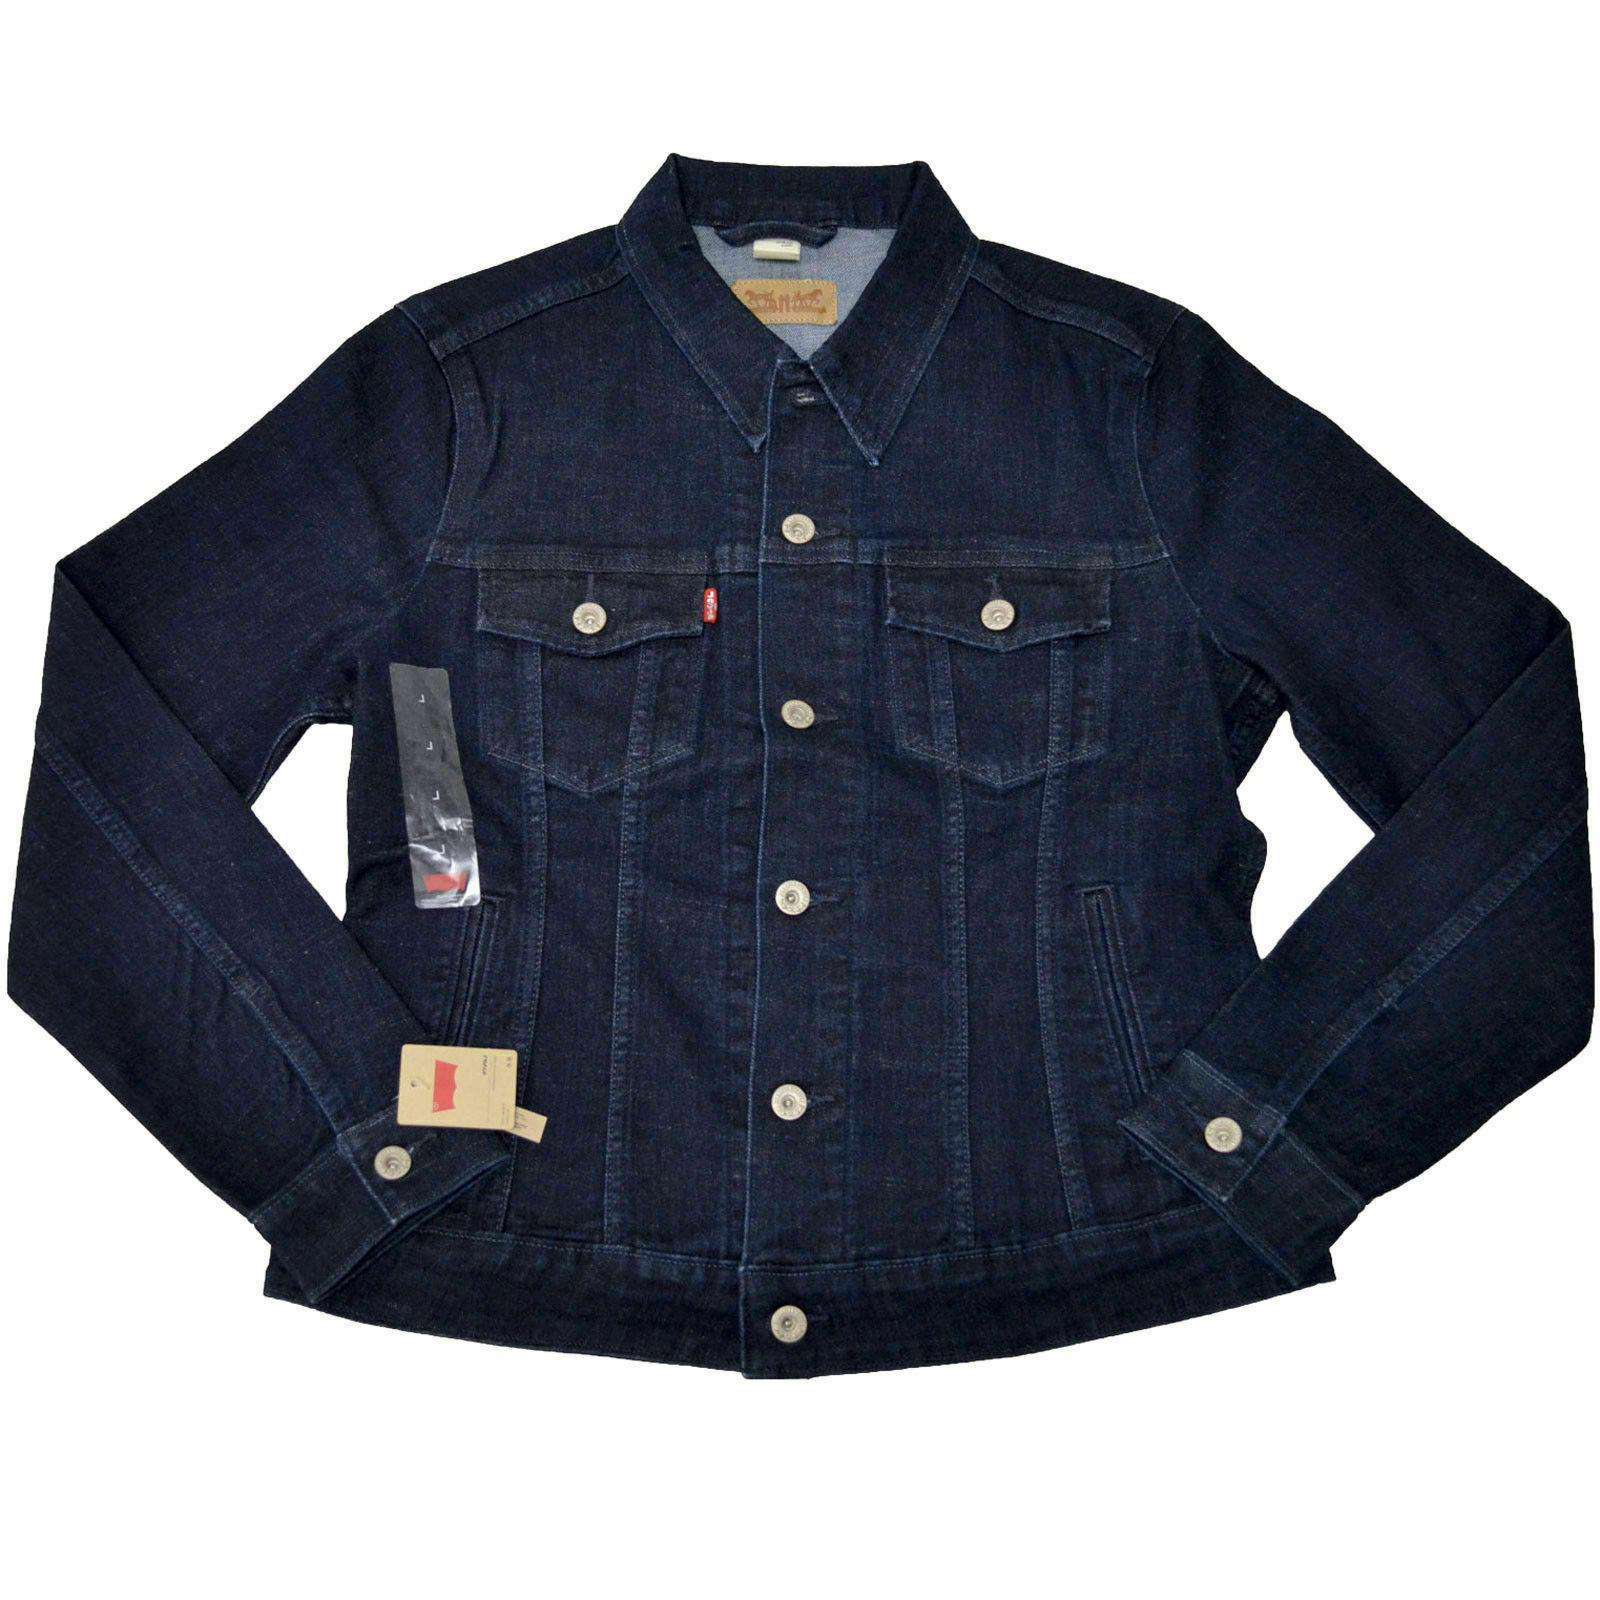 womens jean jacket long sleeve button up